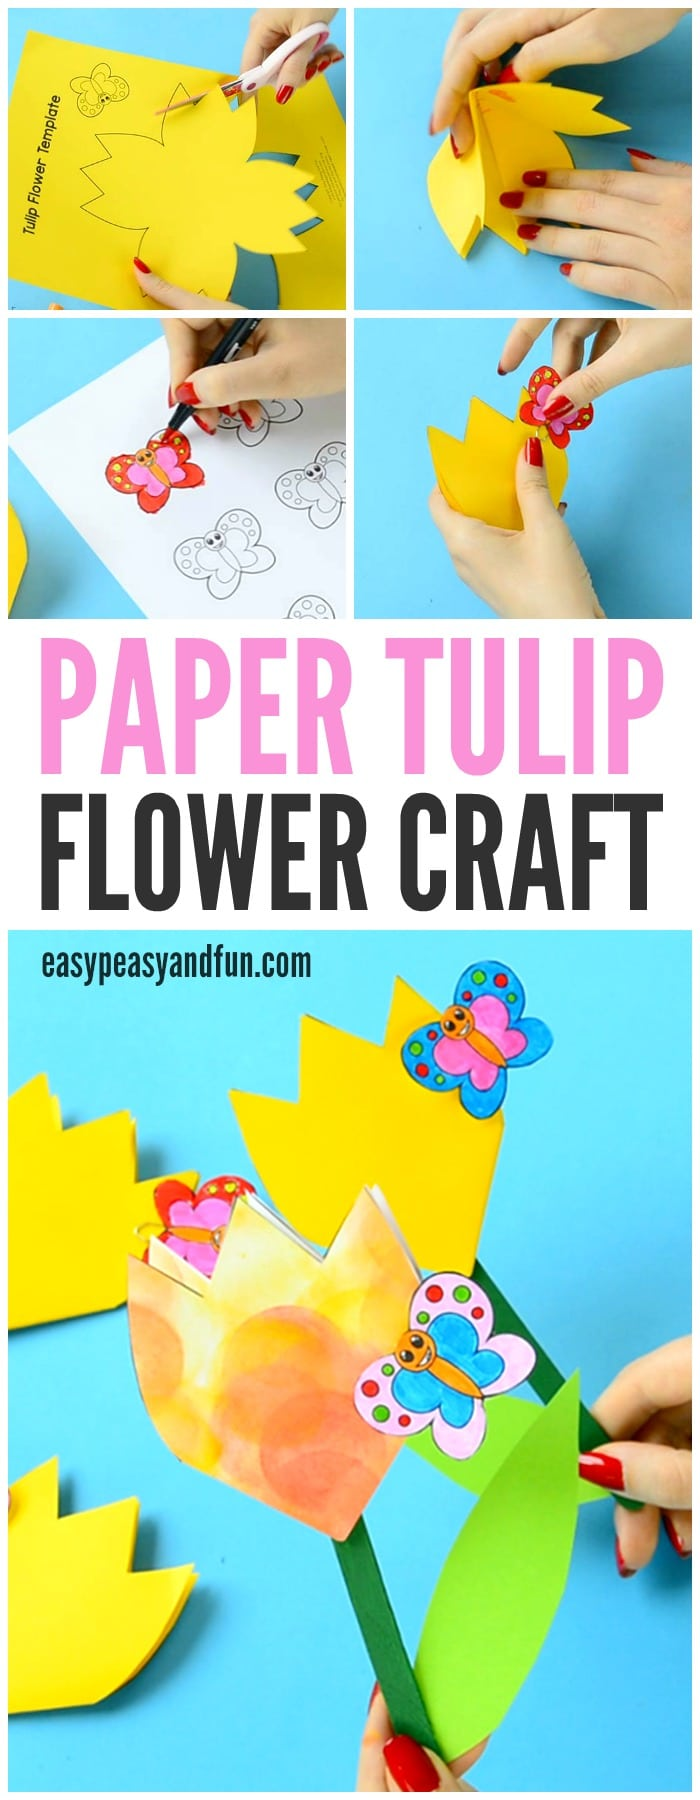 Paper tulip flower craft with printable template easy peasy and fun cute paper tulip flower craft for kids to make mightylinksfo